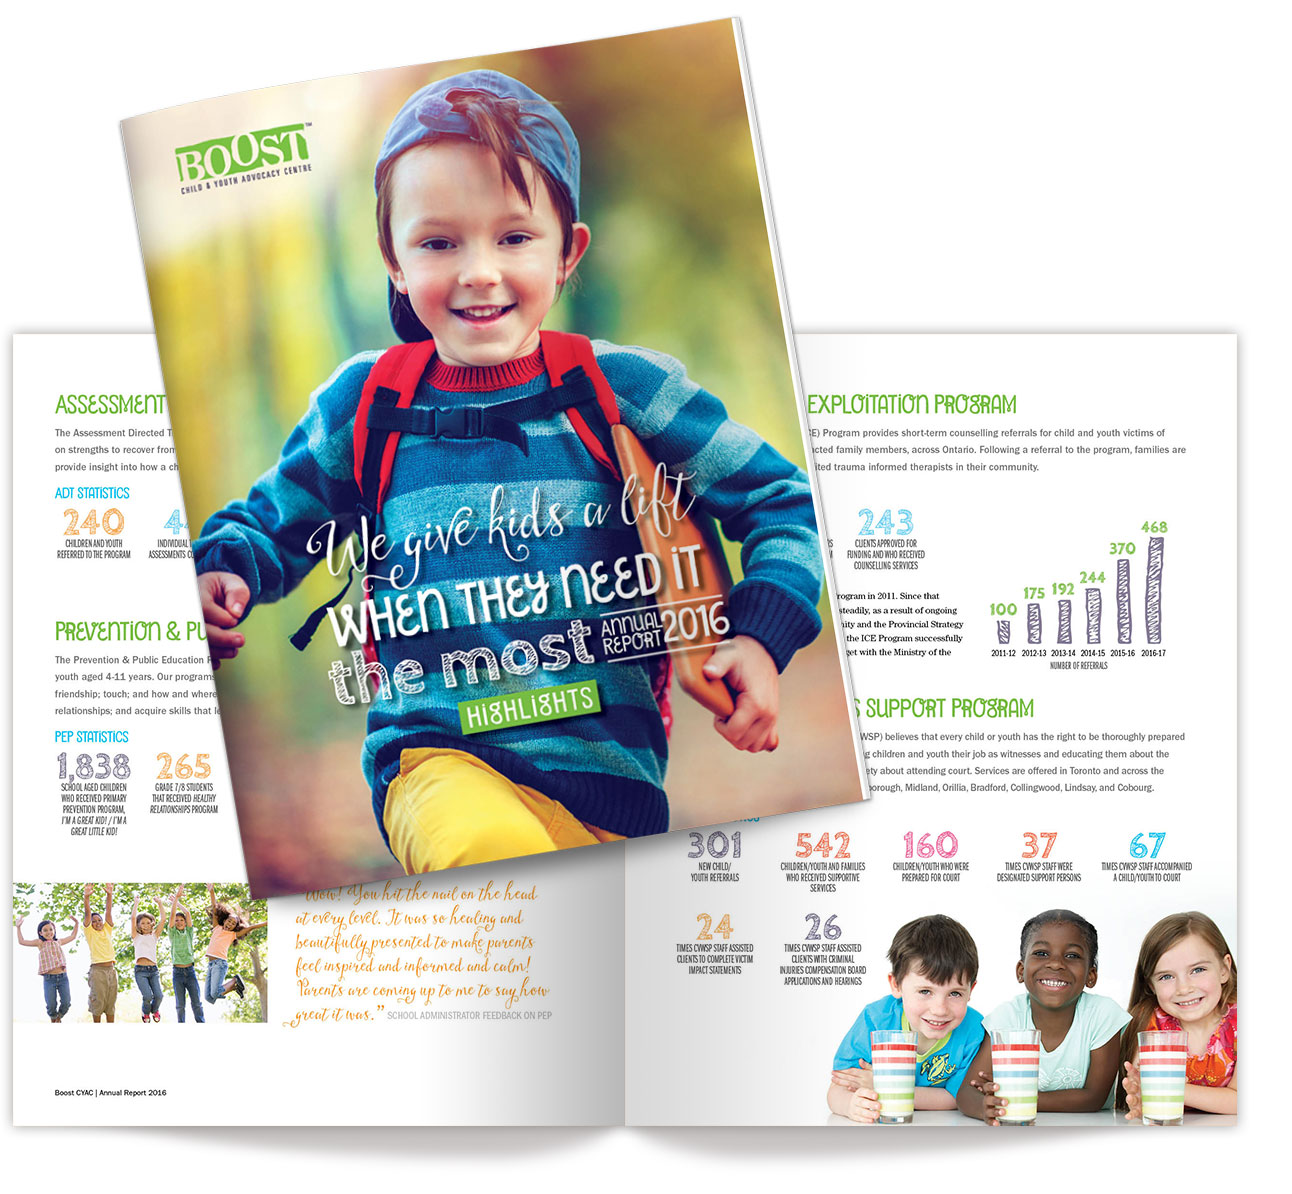 Boost 2016 Annual Report